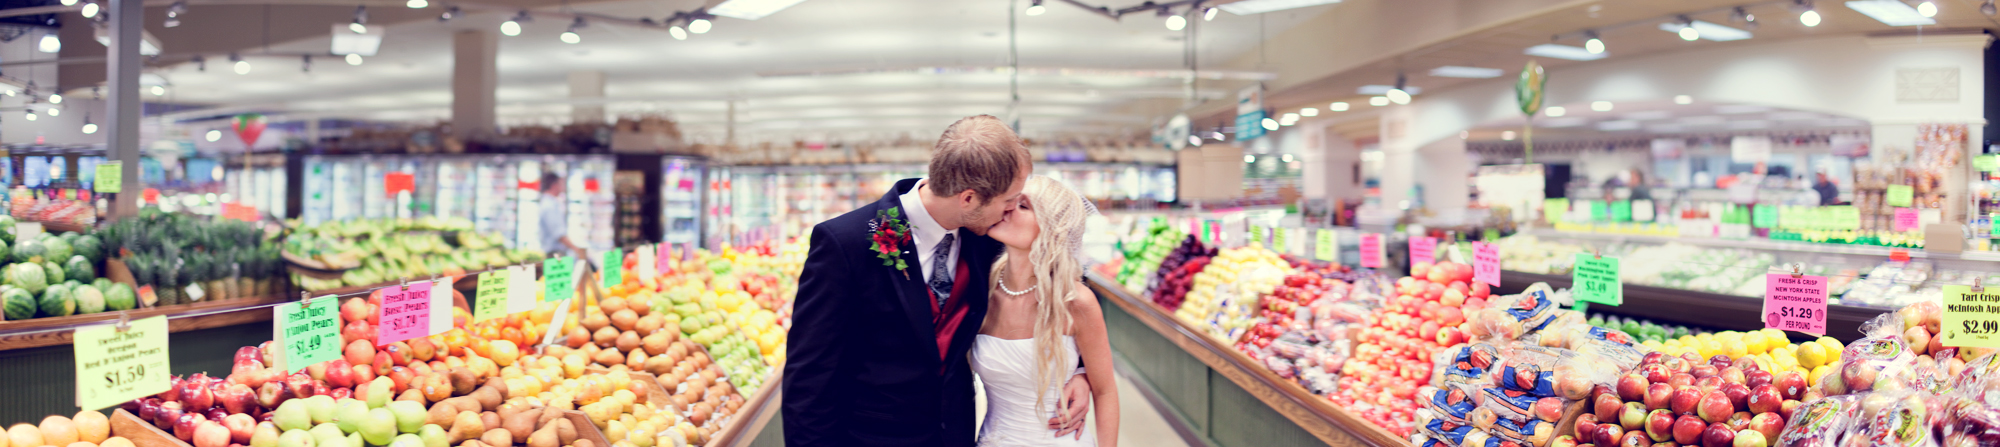 wedding photos valo photography grocery store panaramic